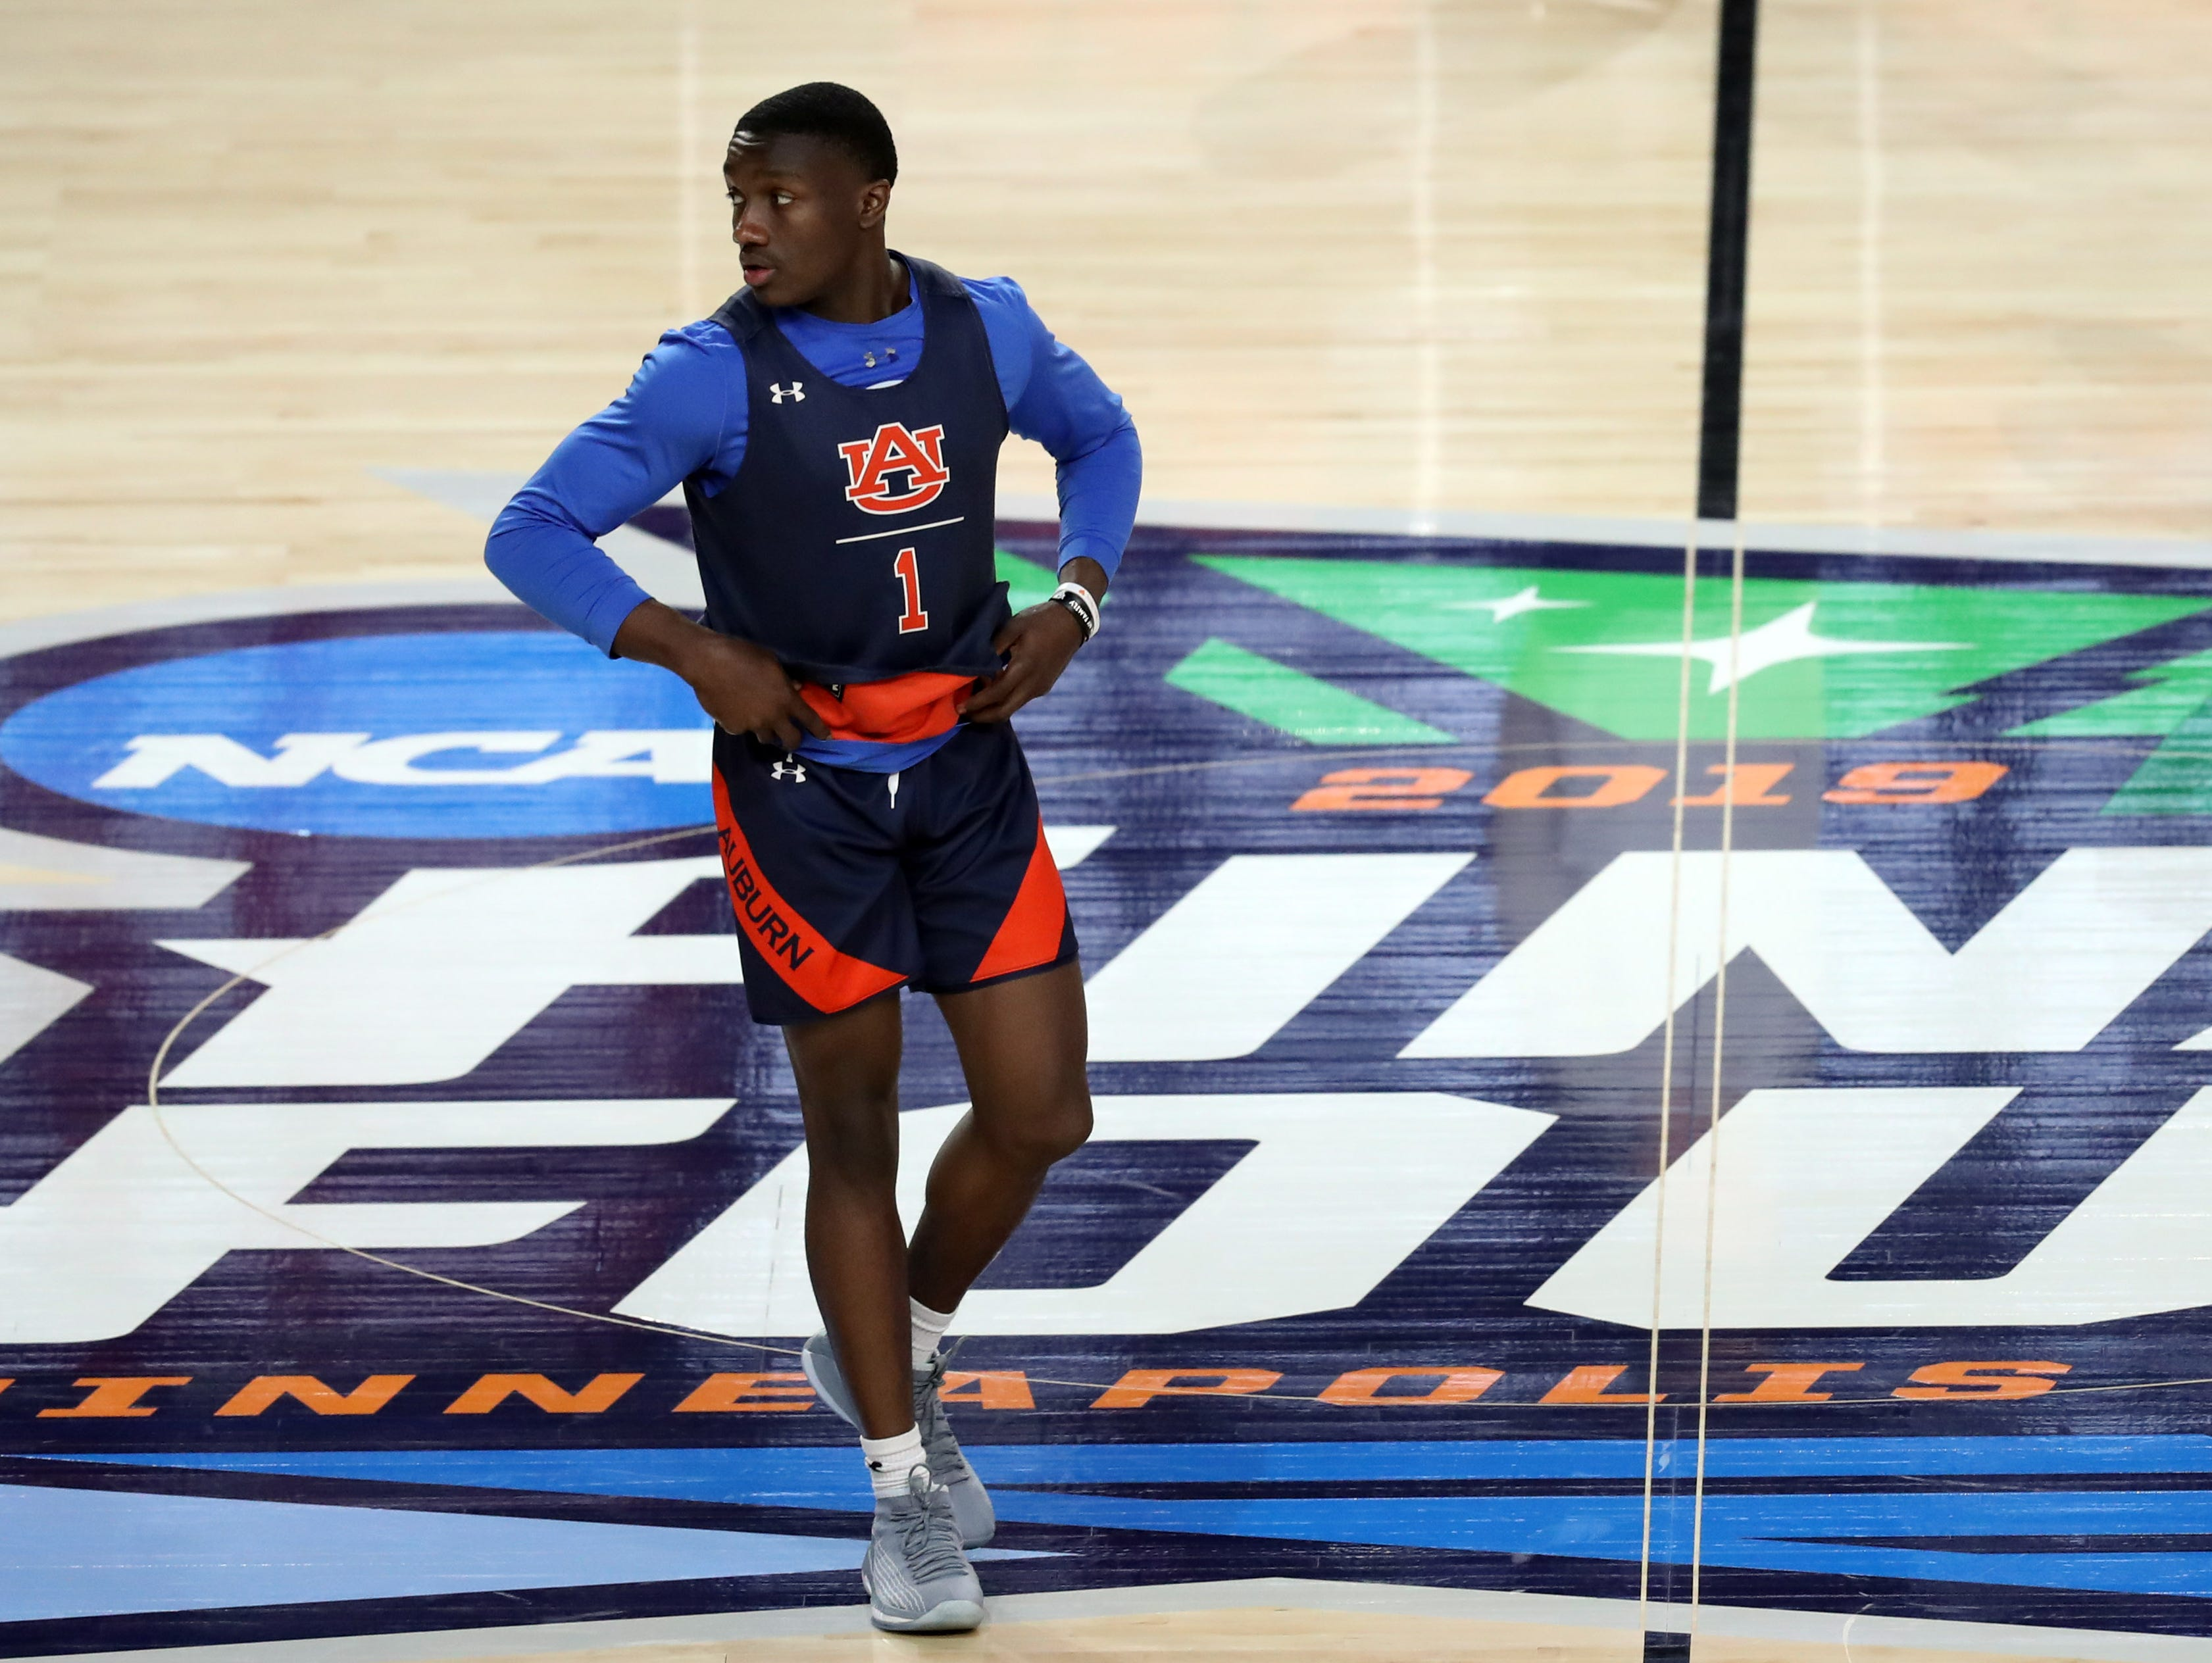 Apr 5, 2019; Minneapolis, MN, USA; Auburn Tigers guard Jared Harper (1) during practice for the 2019 men's Final Four at US Bank Stadium. Mandatory Credit: Brace Hemmelgarn-USA TODAY Sports